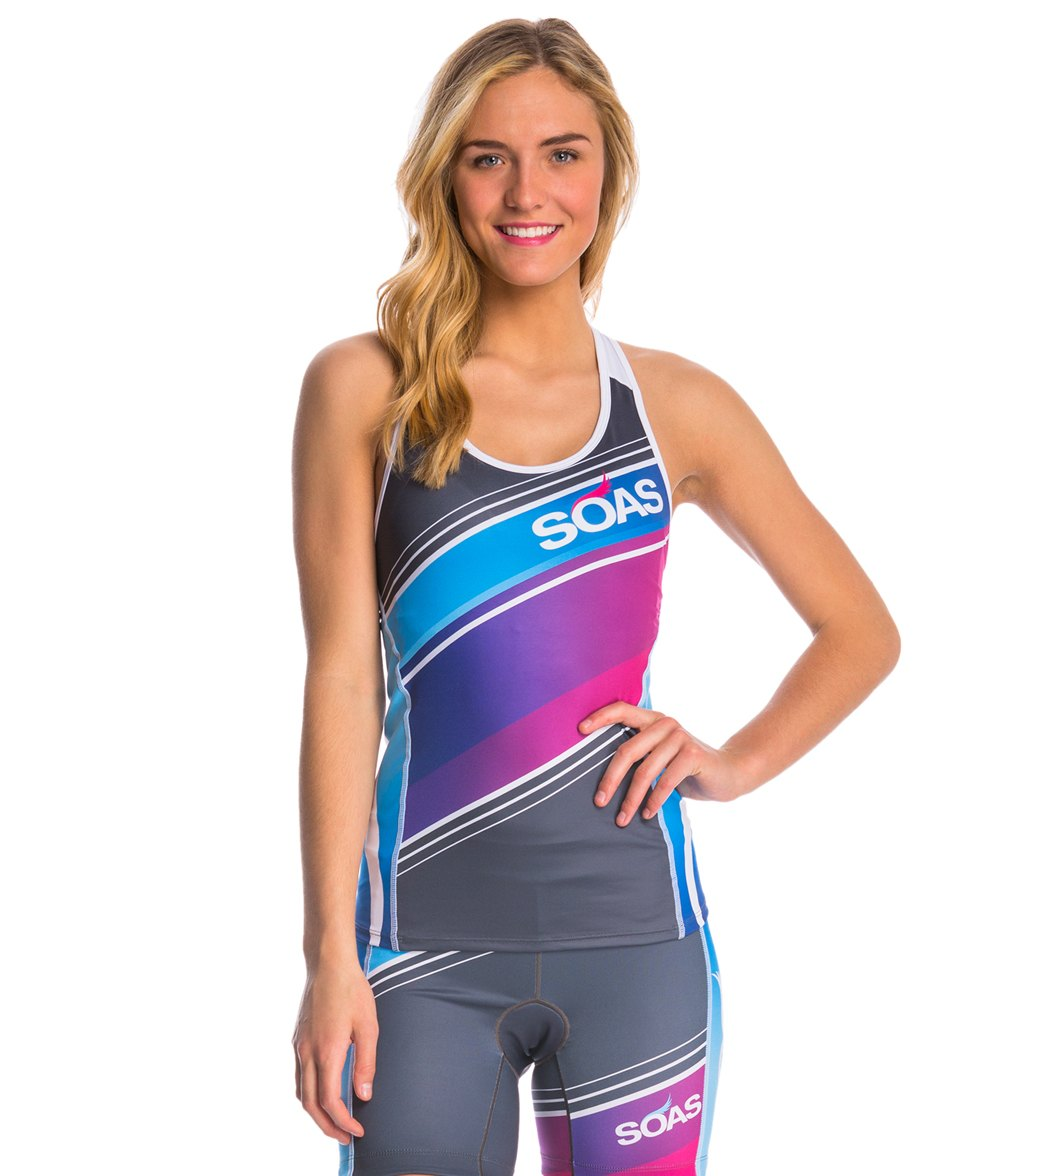 On the 2XU website you can find current outlet of the 2XU collection, opened online stores, list of 2XU USA stores and their opening hours, etc.